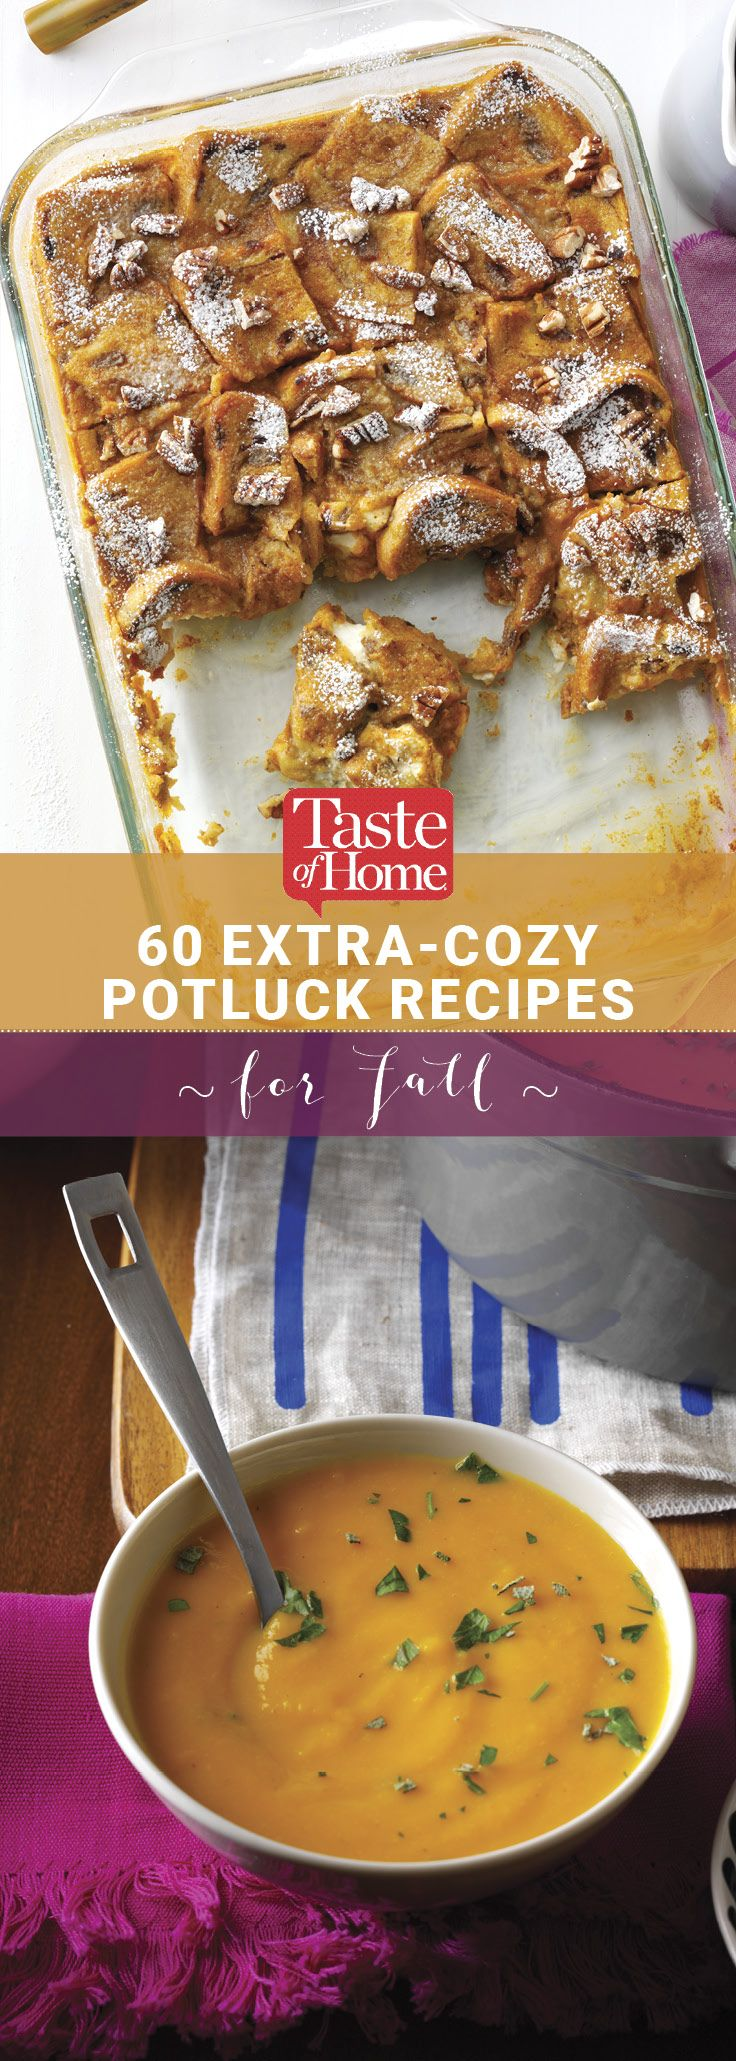 60 Extra Cozy Potluck Recipes For Fall From Taste Of Home